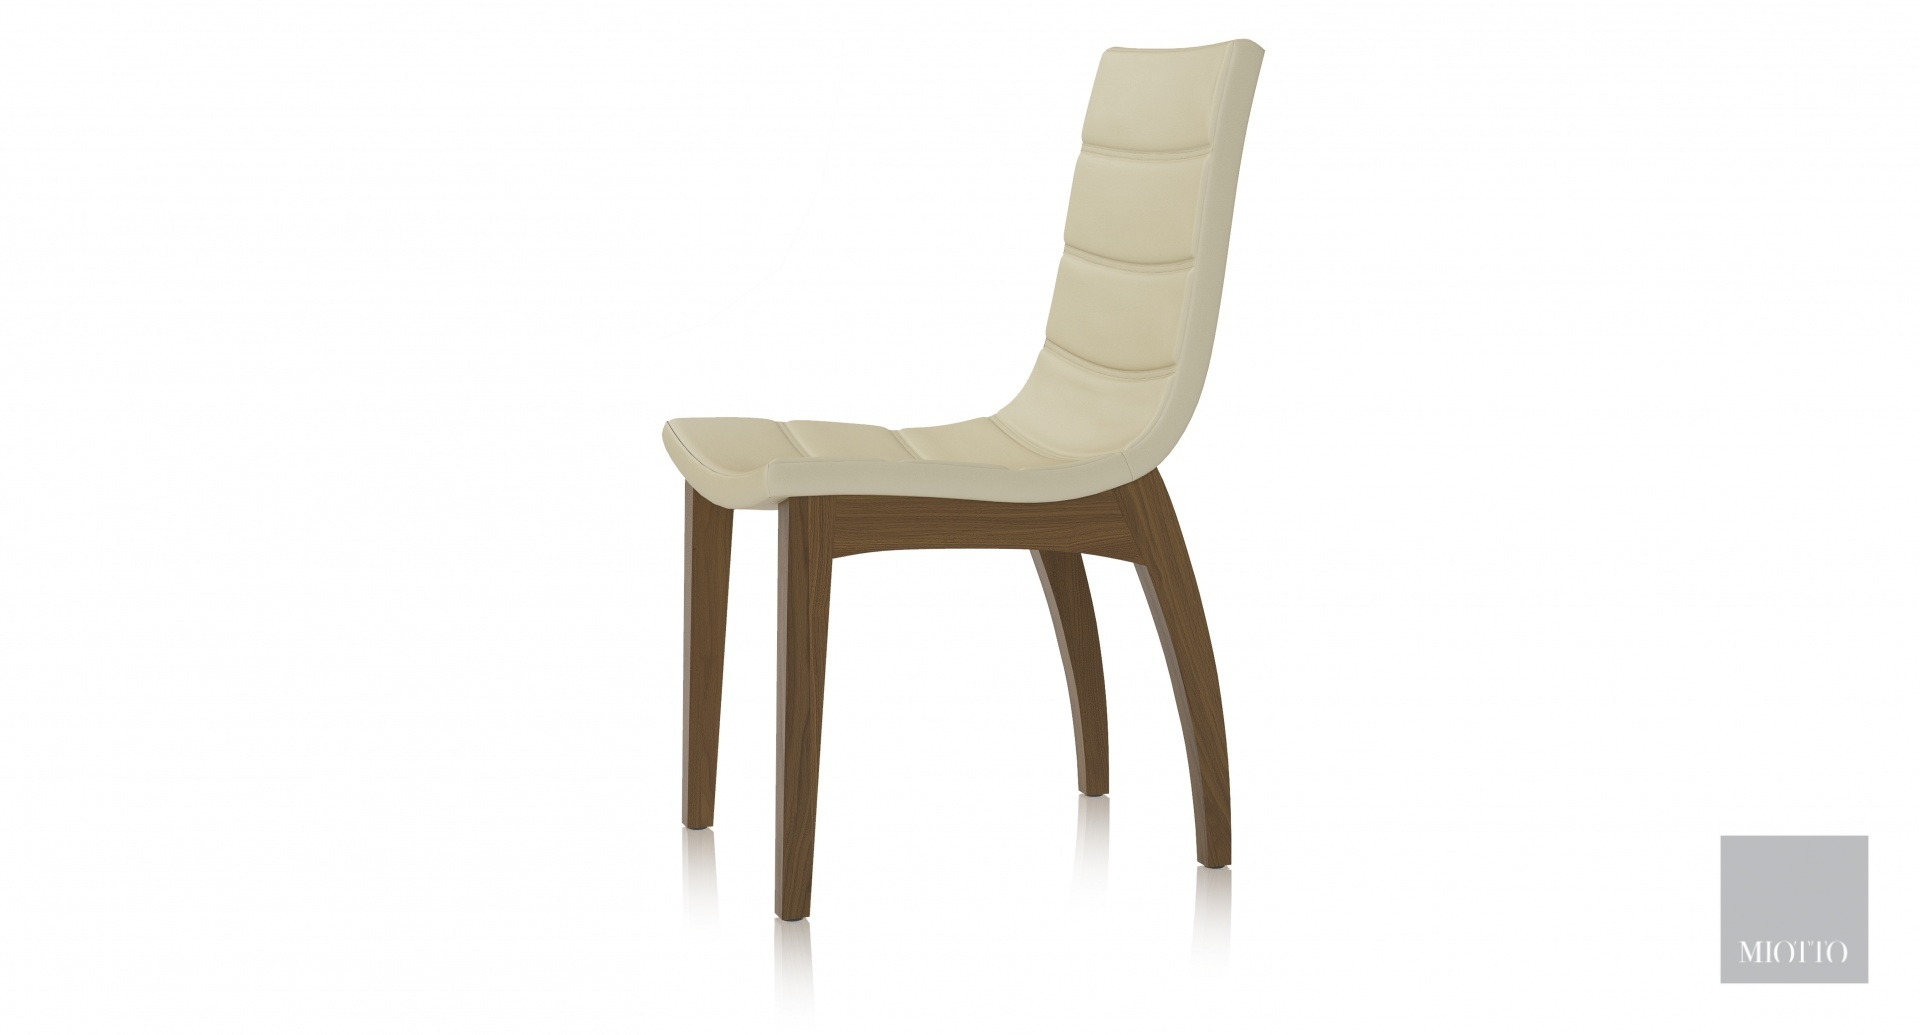 miotto_epiro DC cream T miotto dining chair furniture